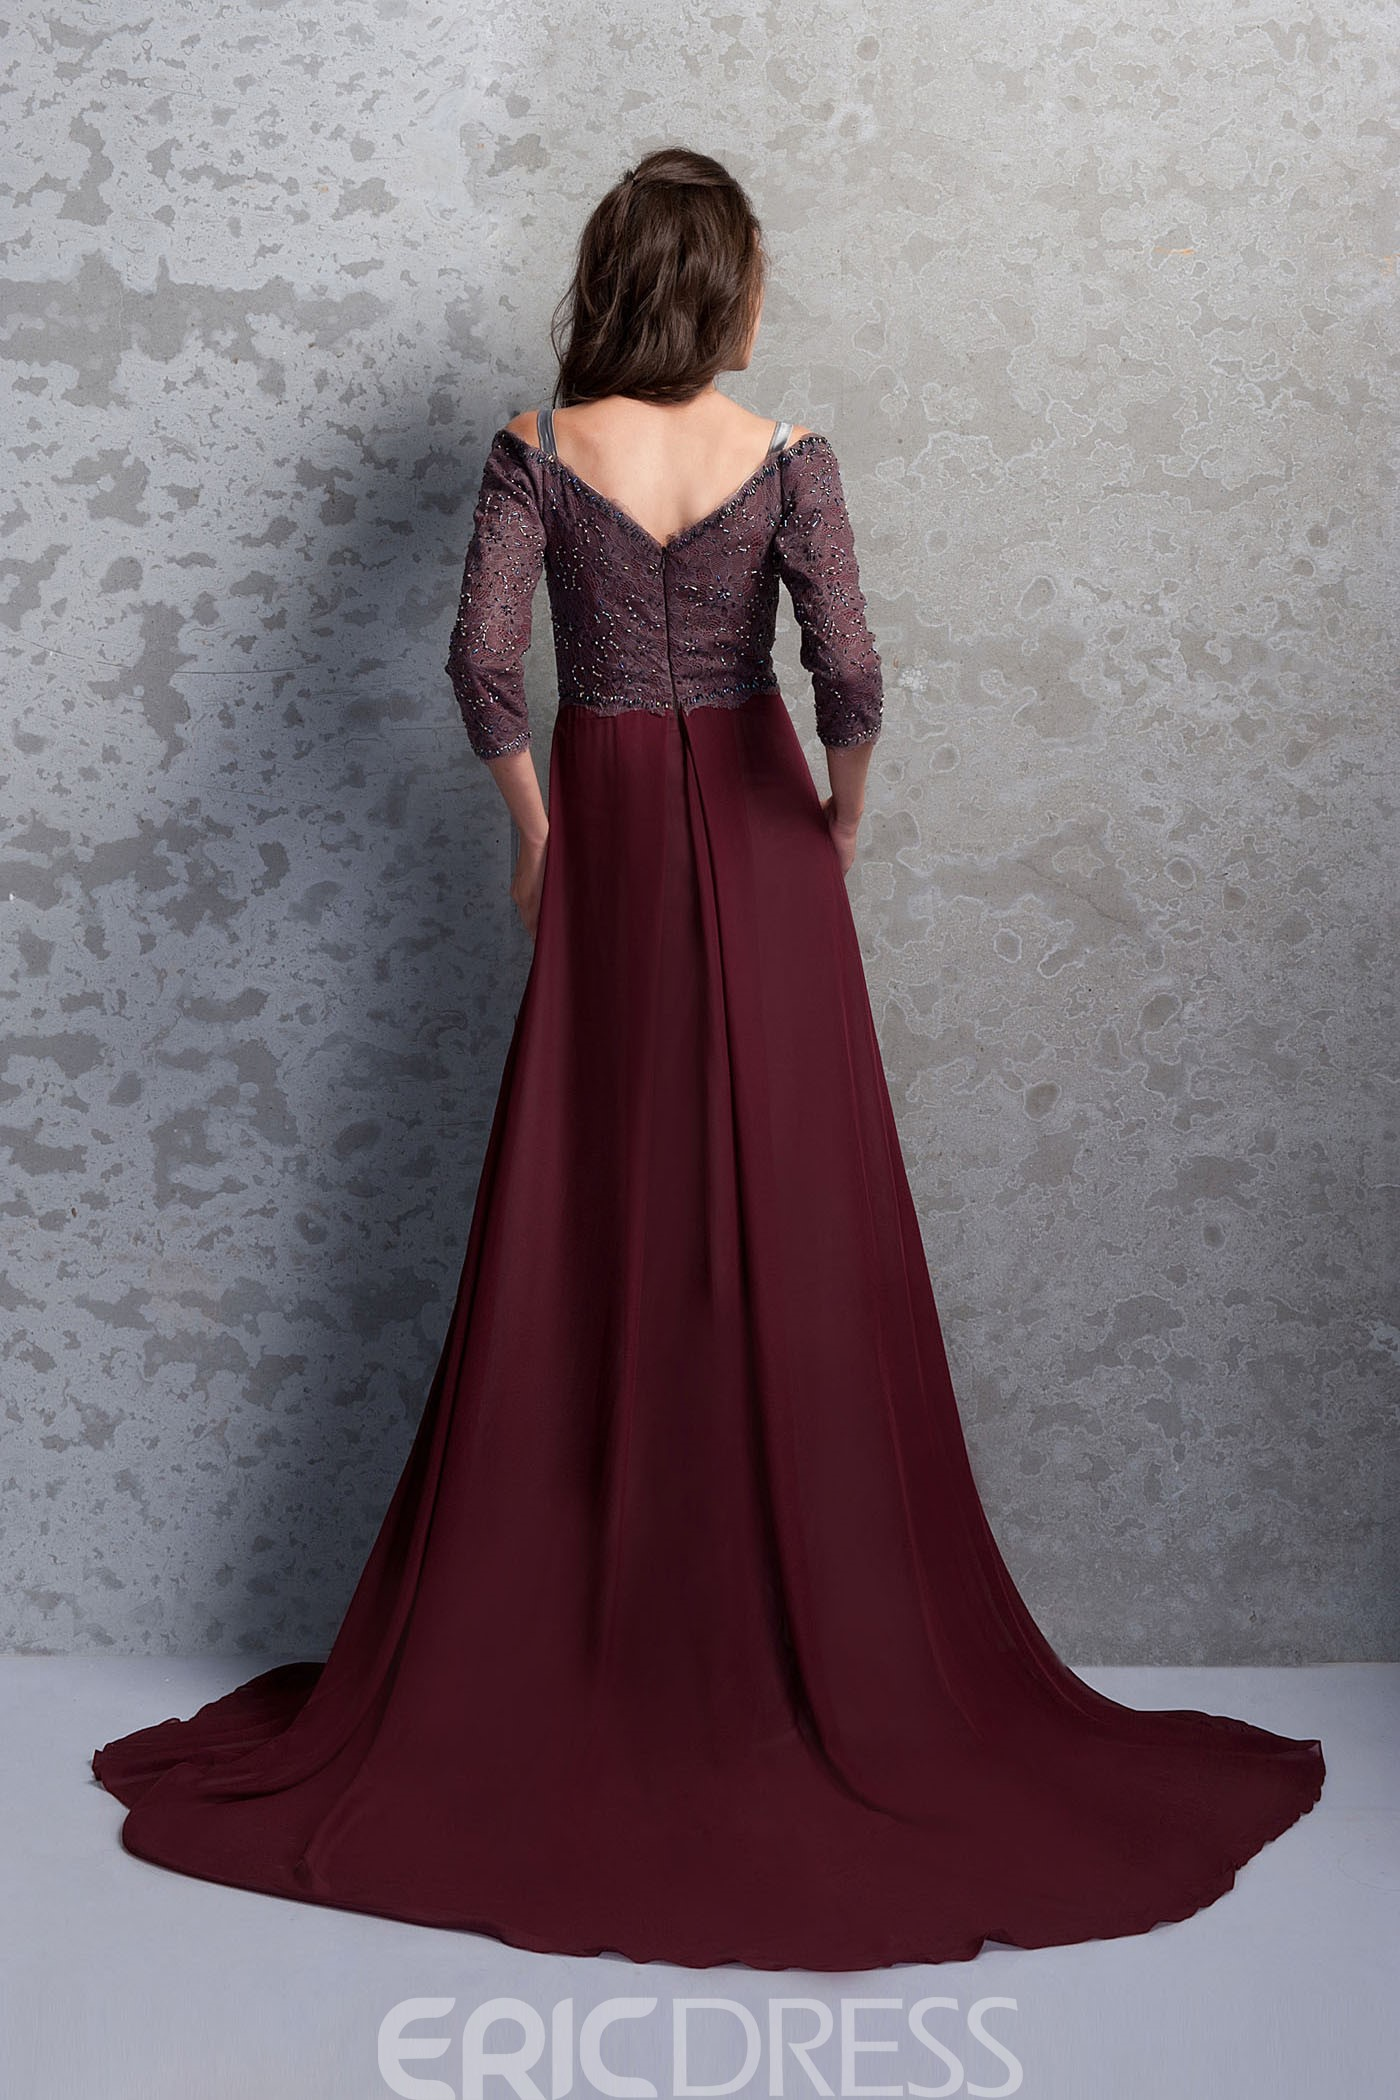 Marvelous Lace/Sequins A-Line Off-the-Shoulder 3/4 Sleeves Floor-Length Renata's Mother of the Bride Dress